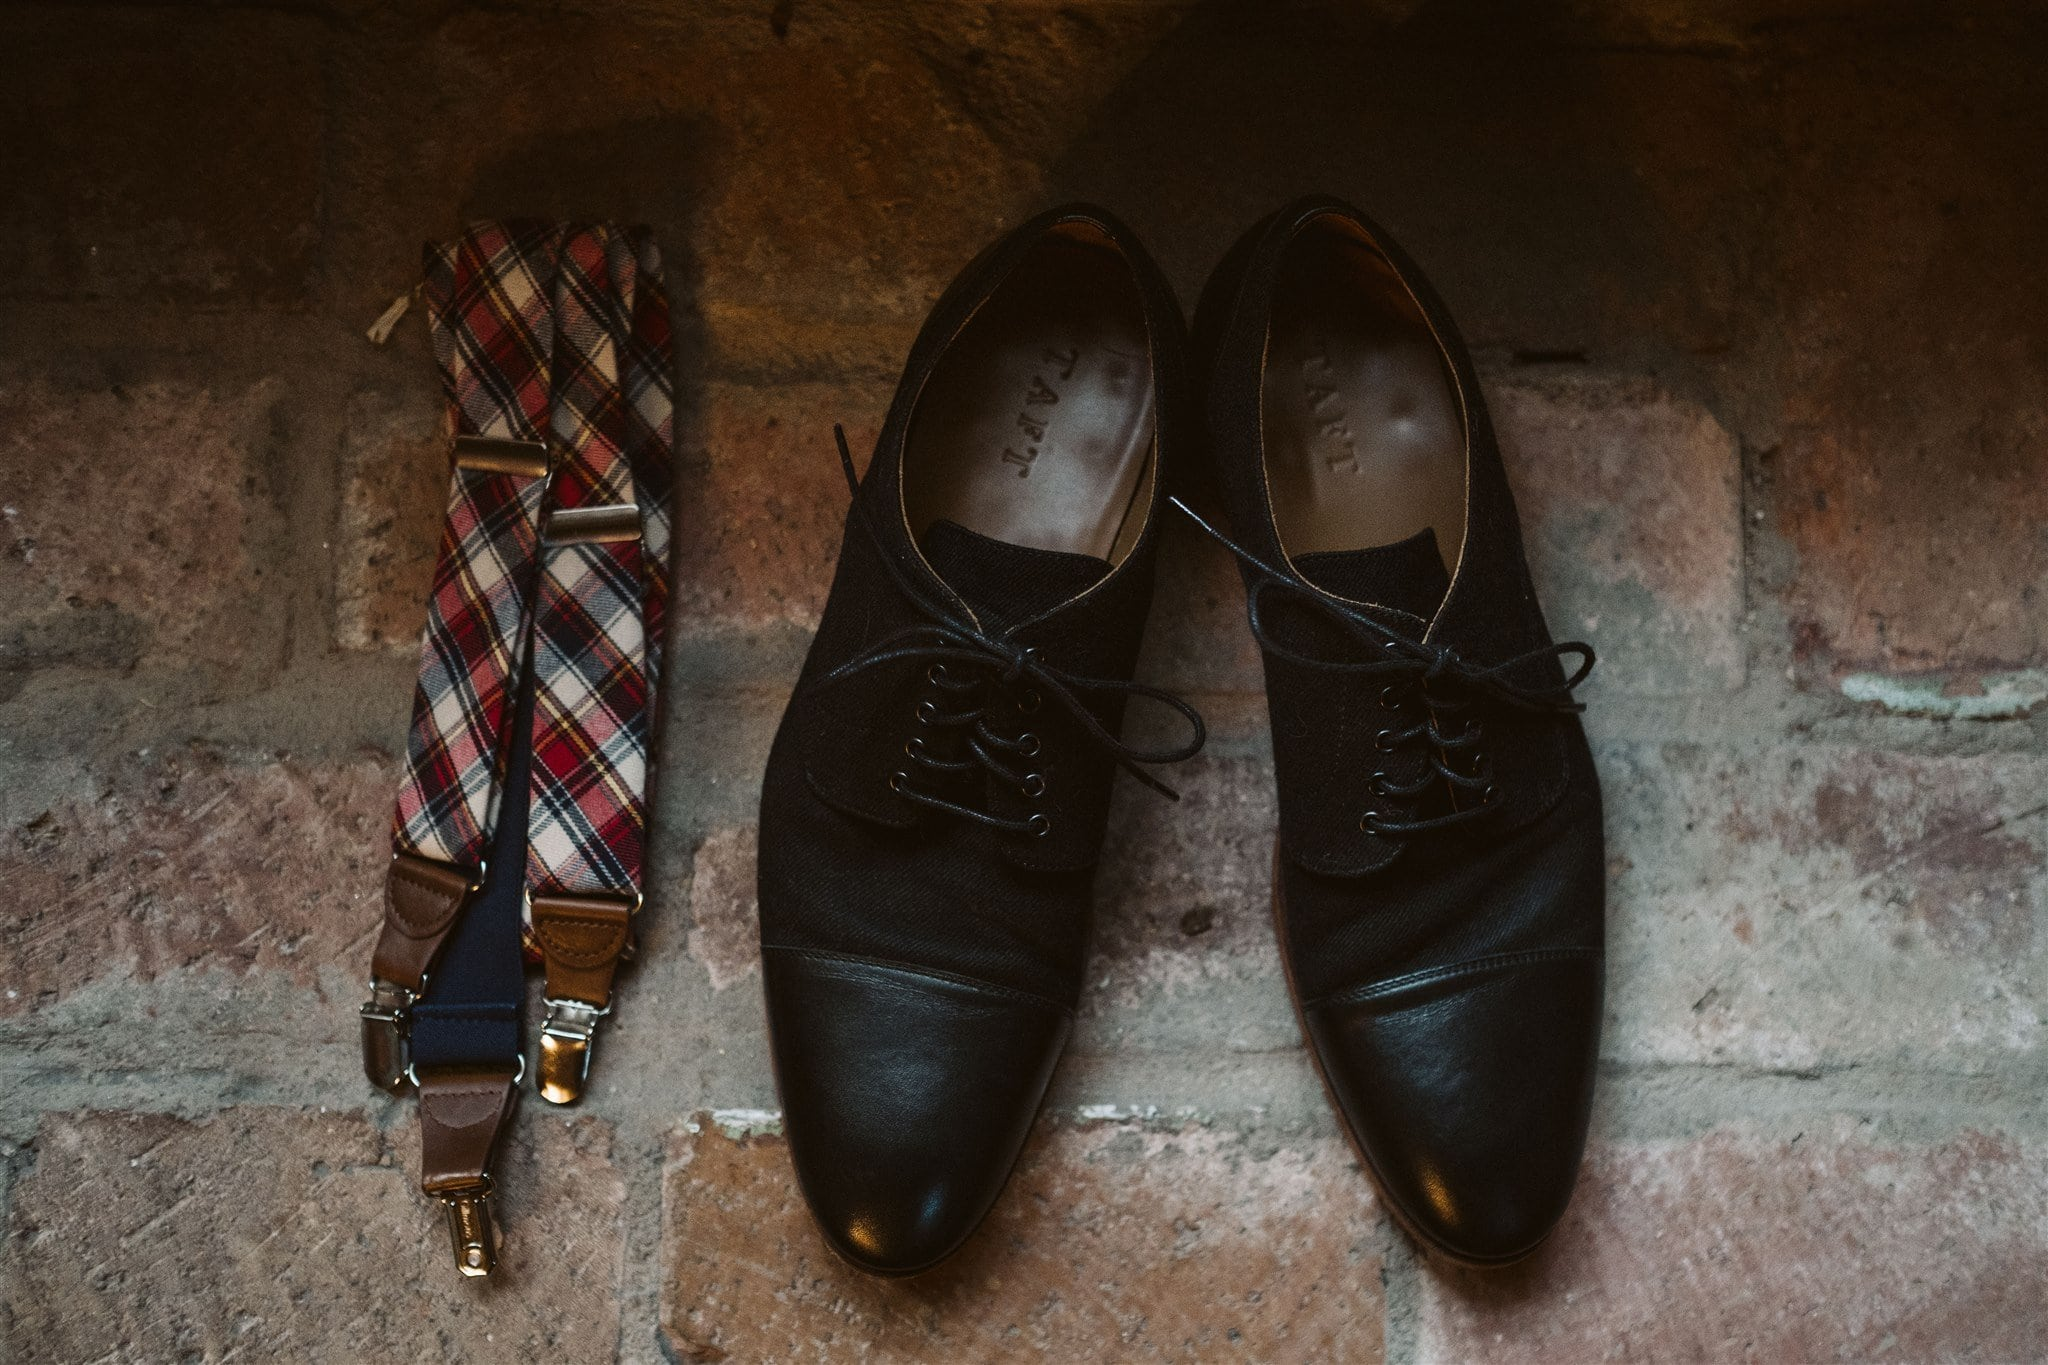 Groom's shoes and suspenders